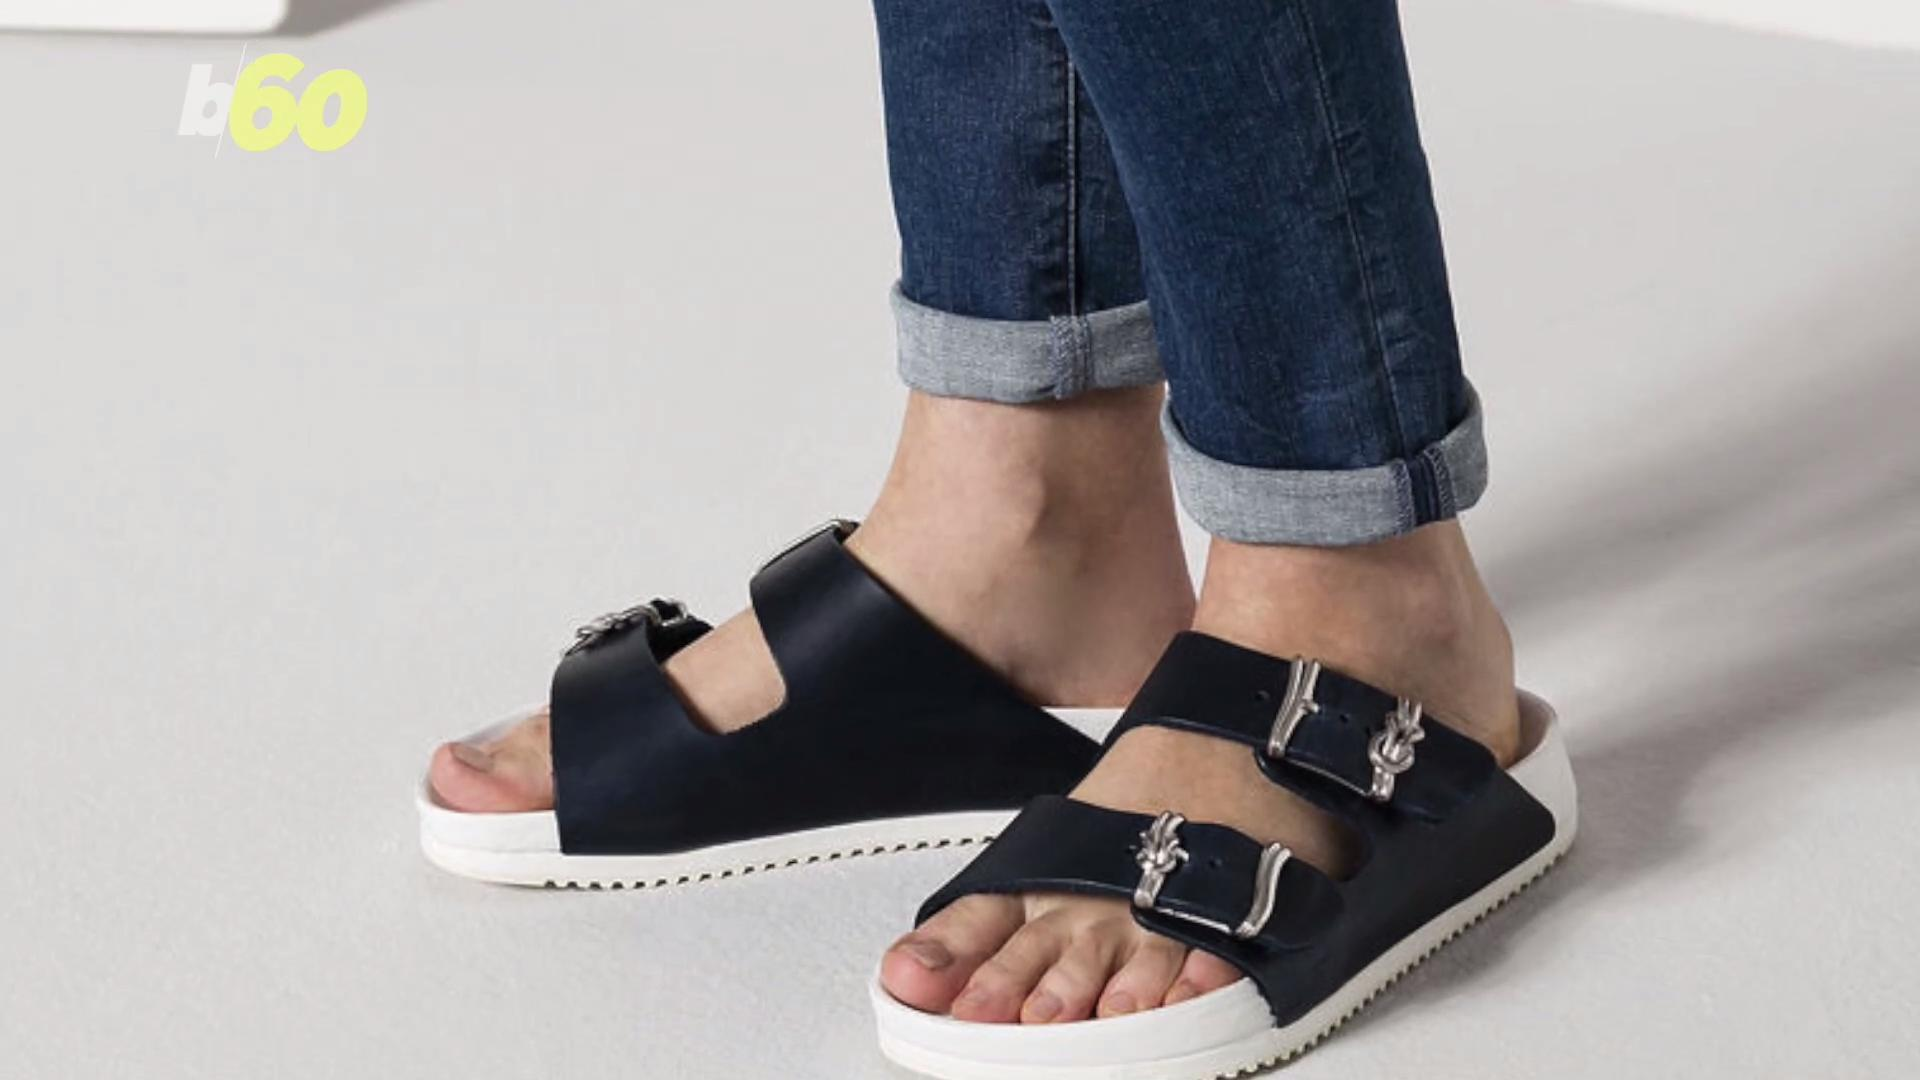 Limited-Edition Birkenstocks Are on Sale for Nearly $800